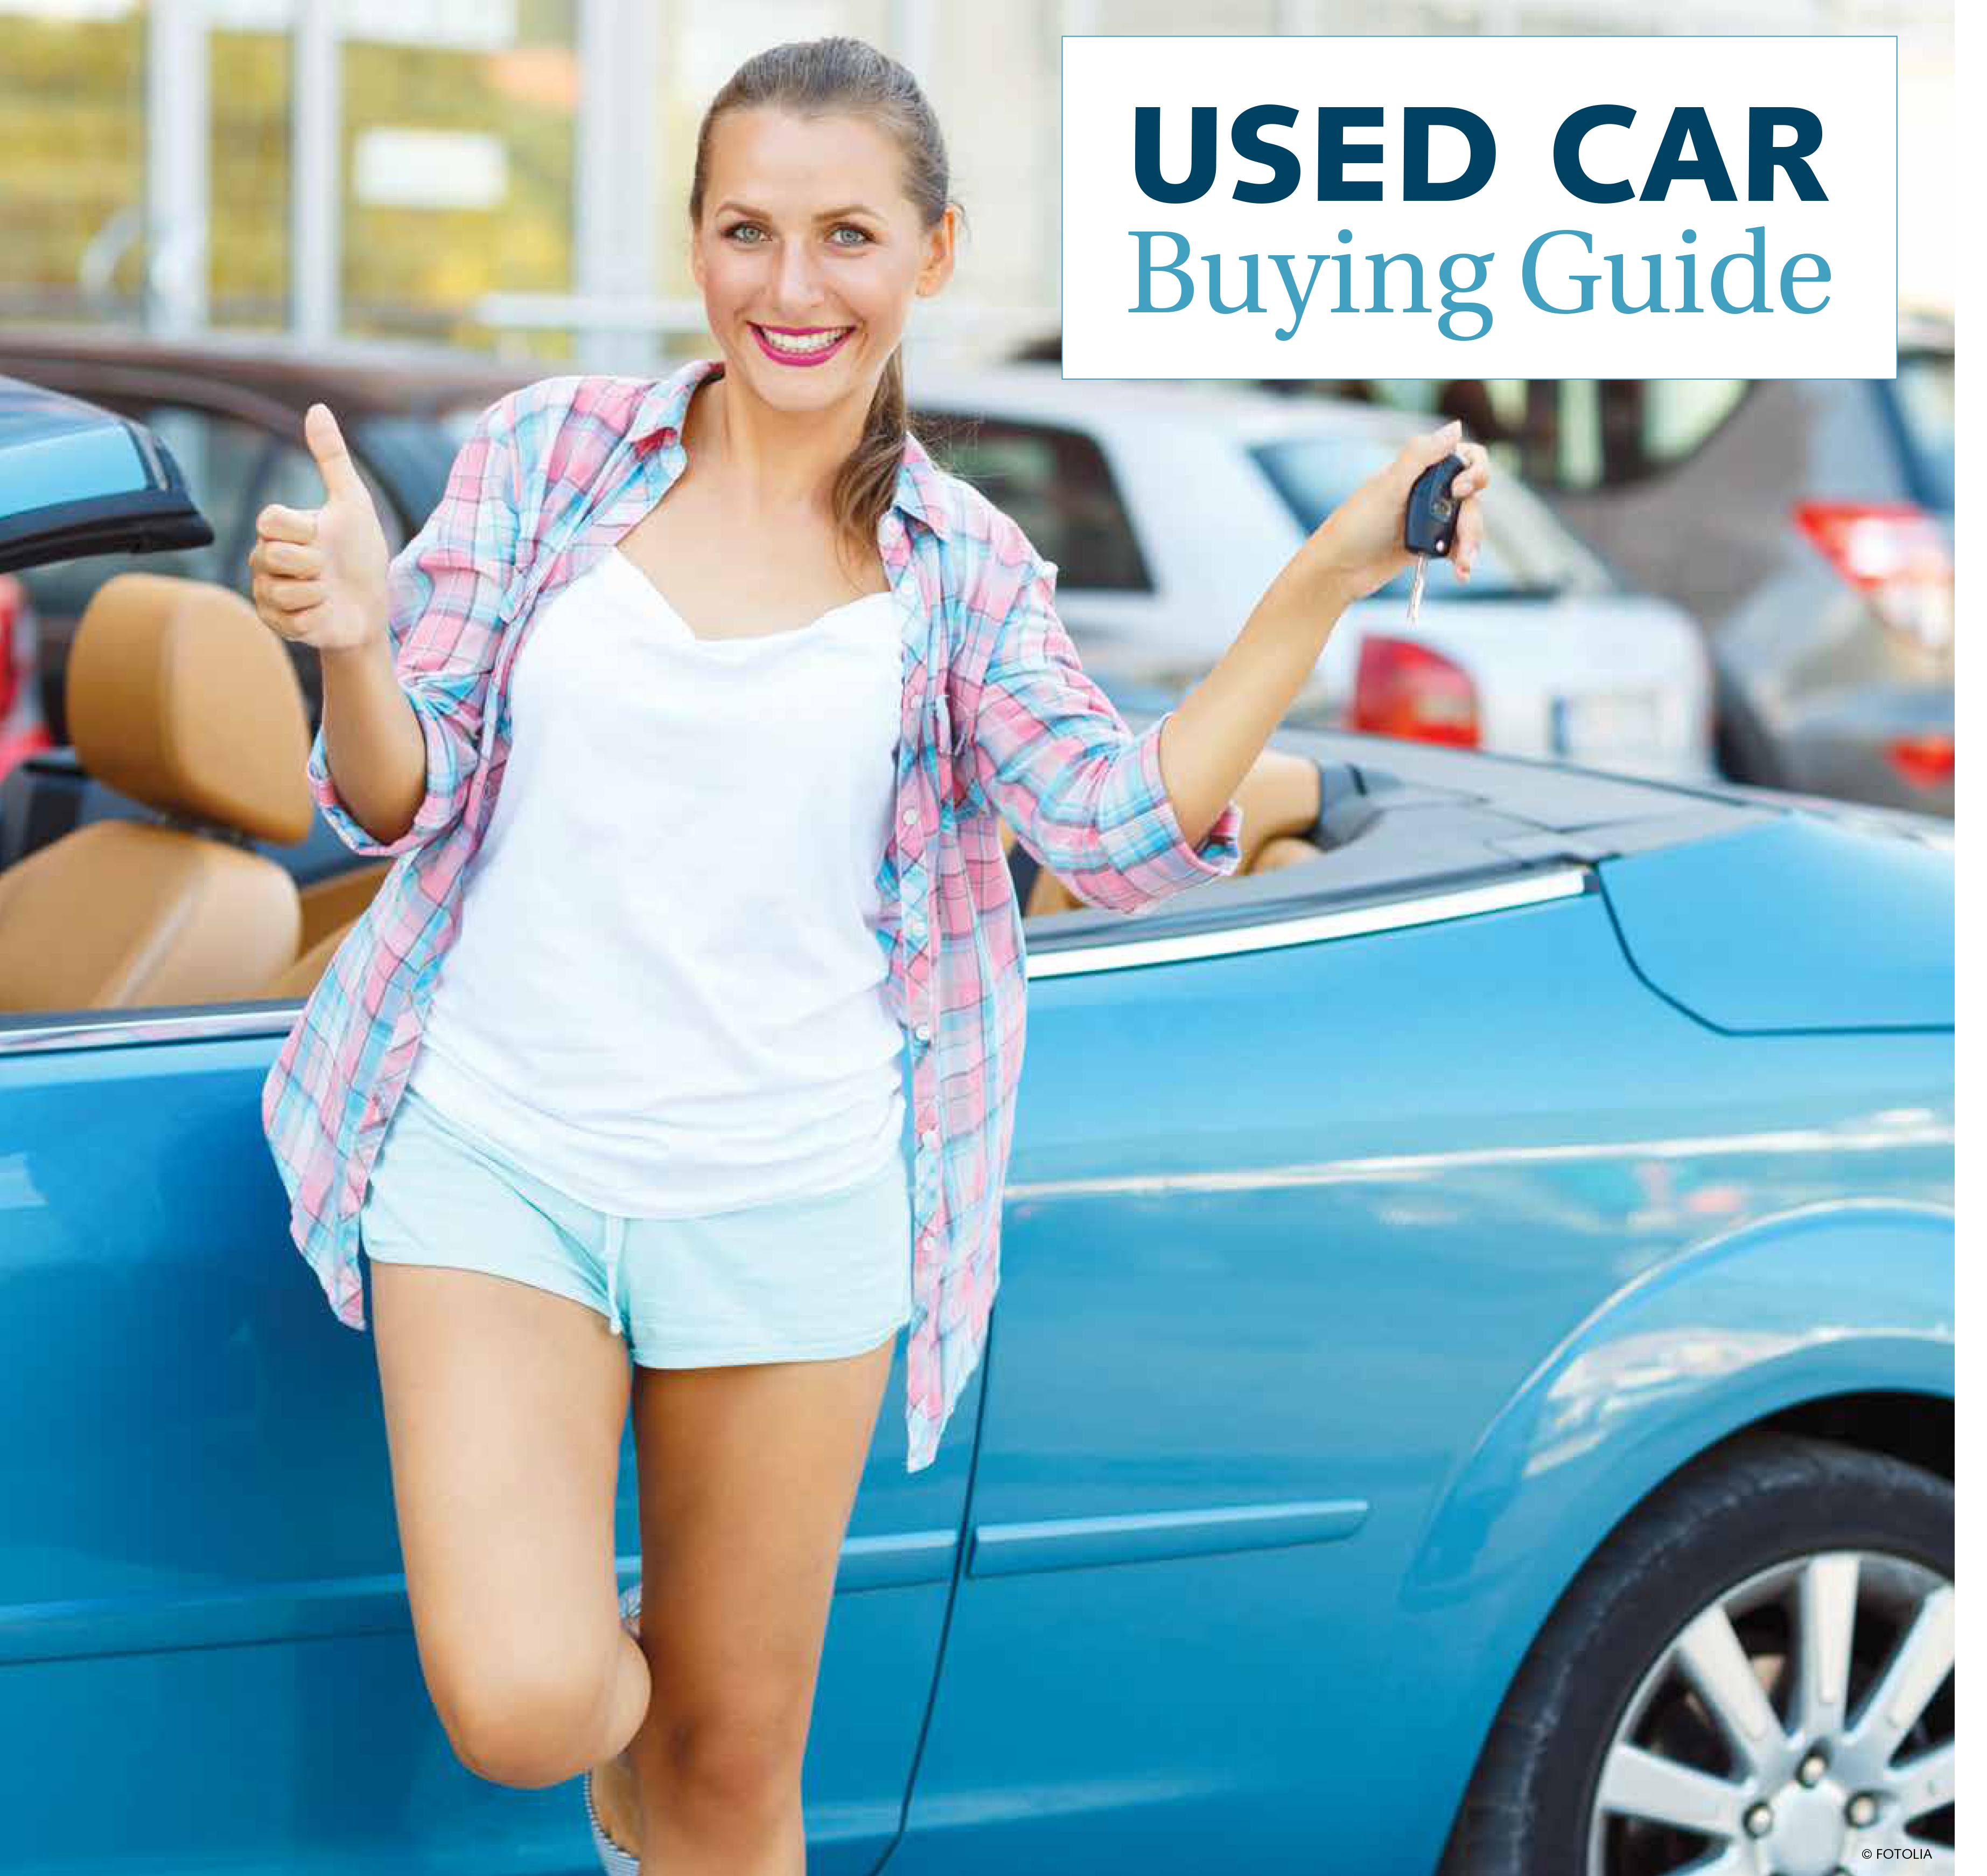 Used Car Buying Guide No. 6